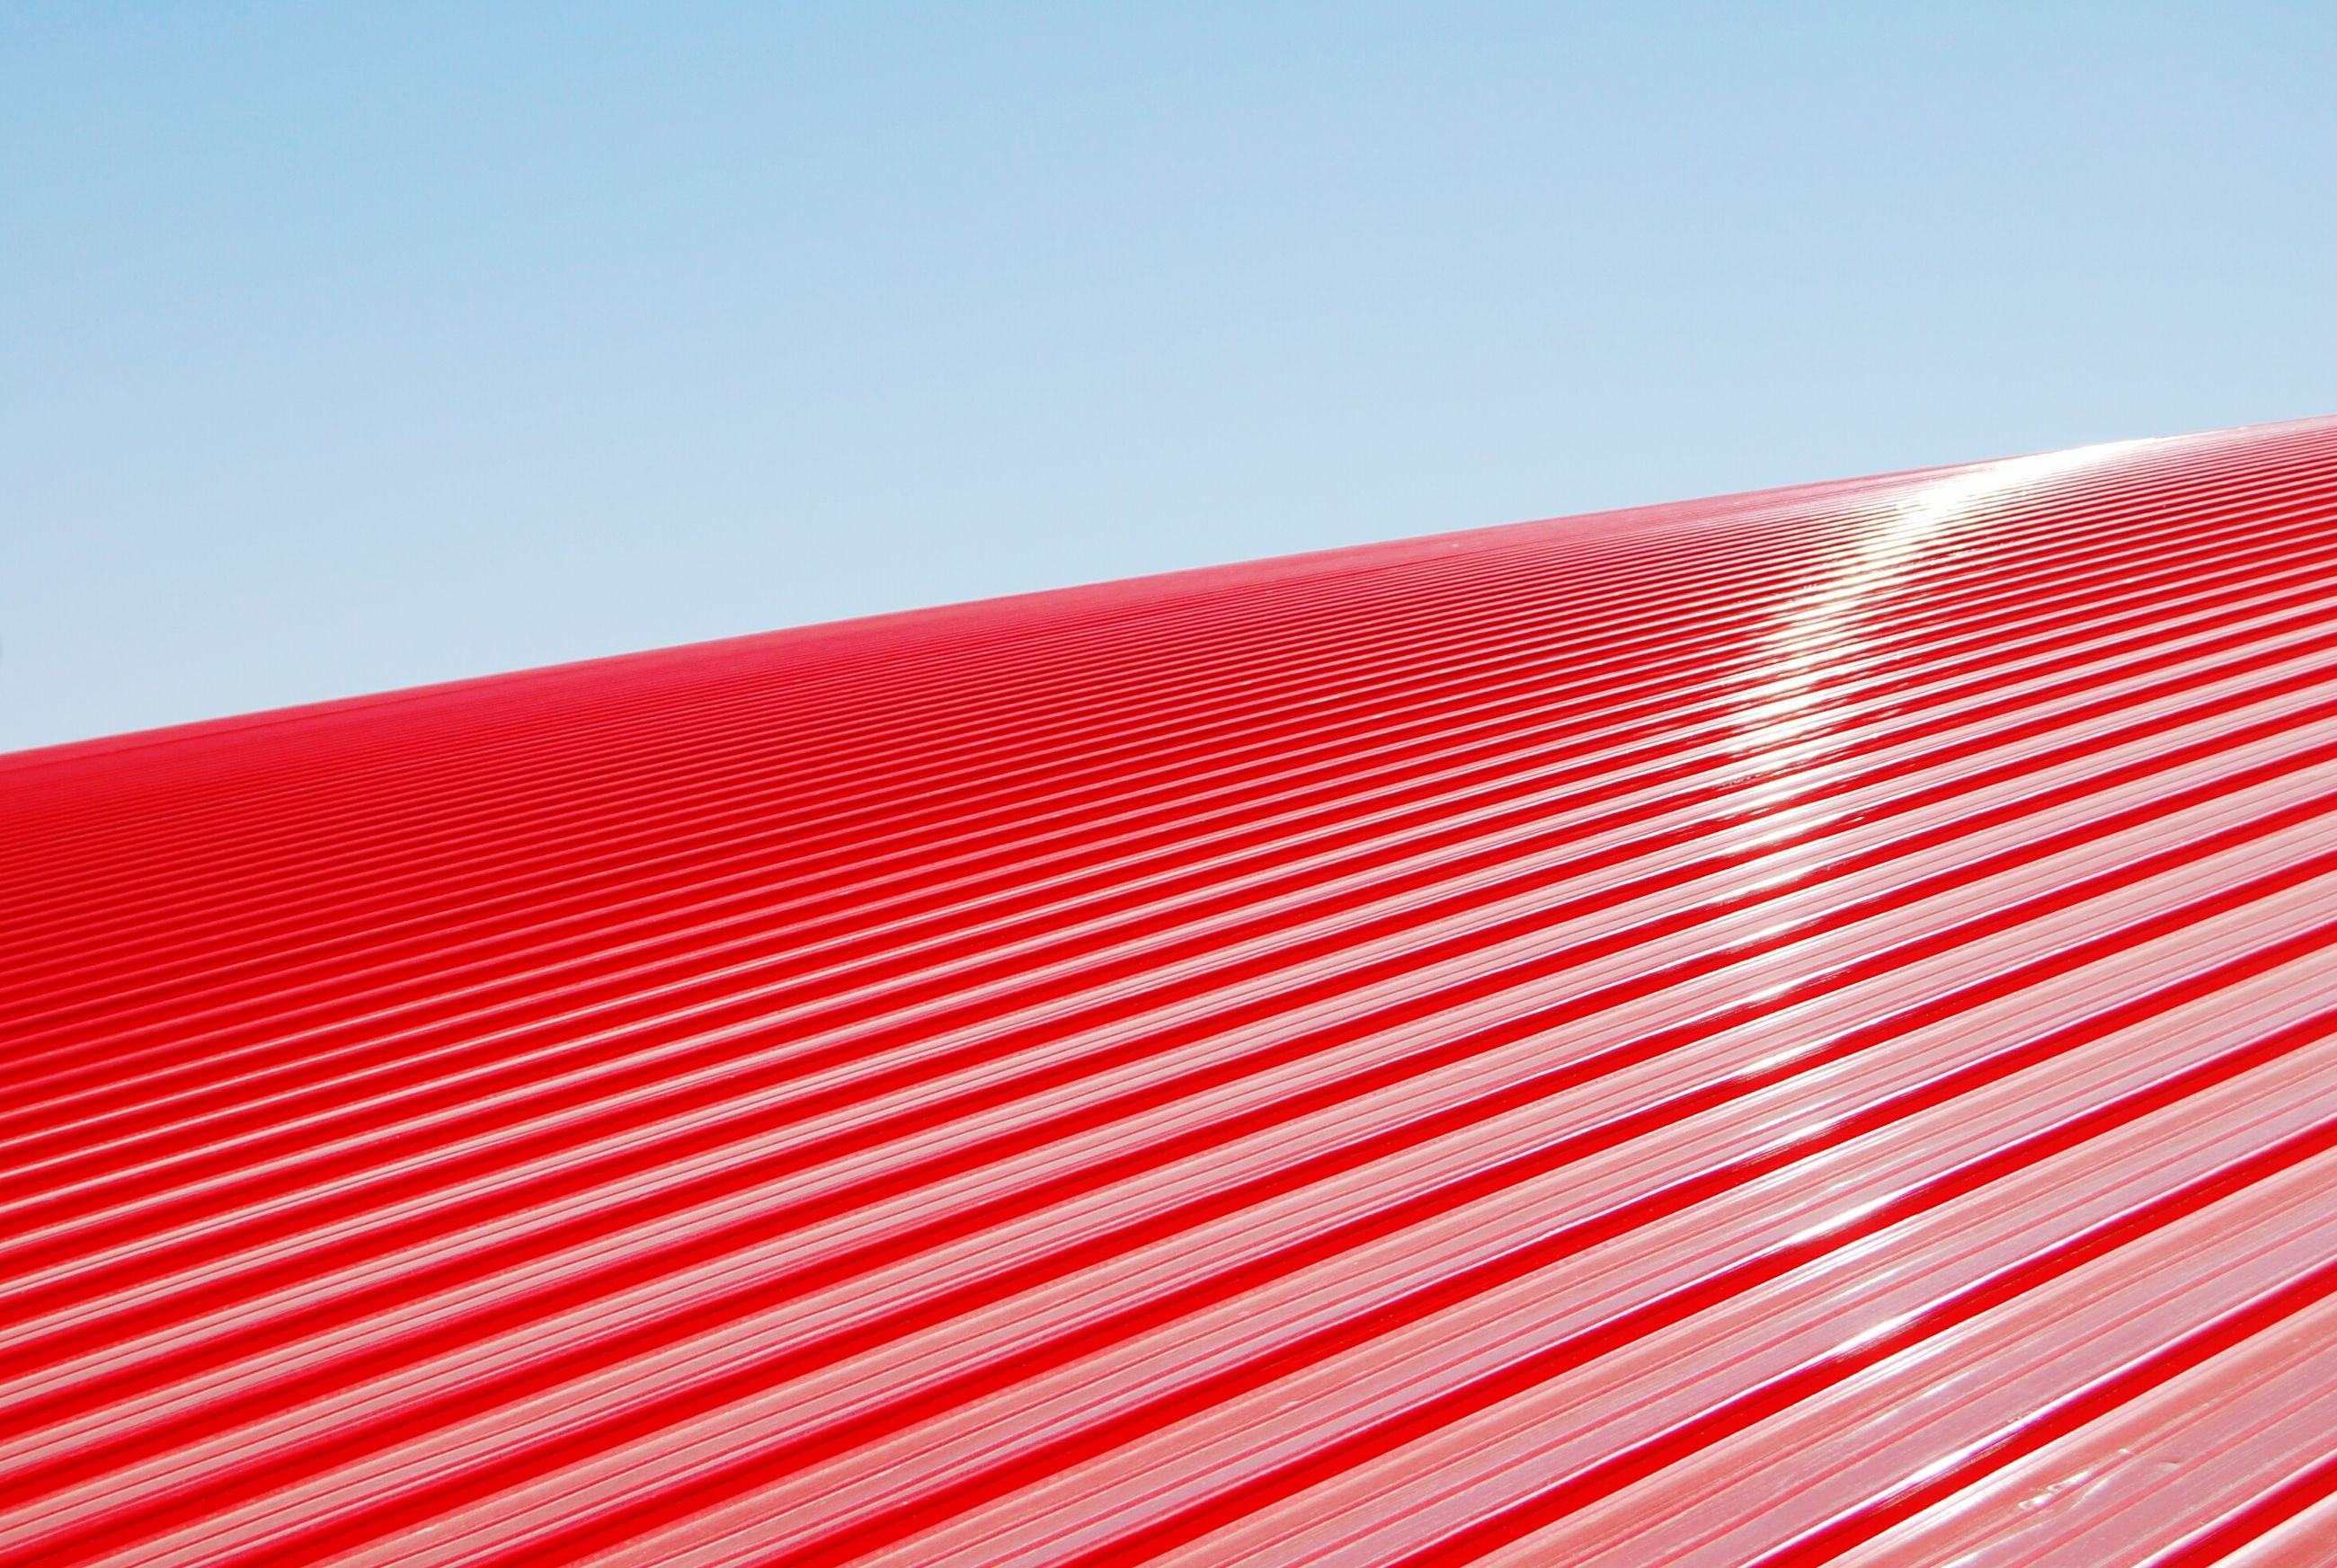 red, clear sky, built structure, architecture, pattern, copy space, low angle view, building exterior, striped, repetition, in a row, no people, roof, design, day, outdoors, blue, part of, sunlight, wall - building feature